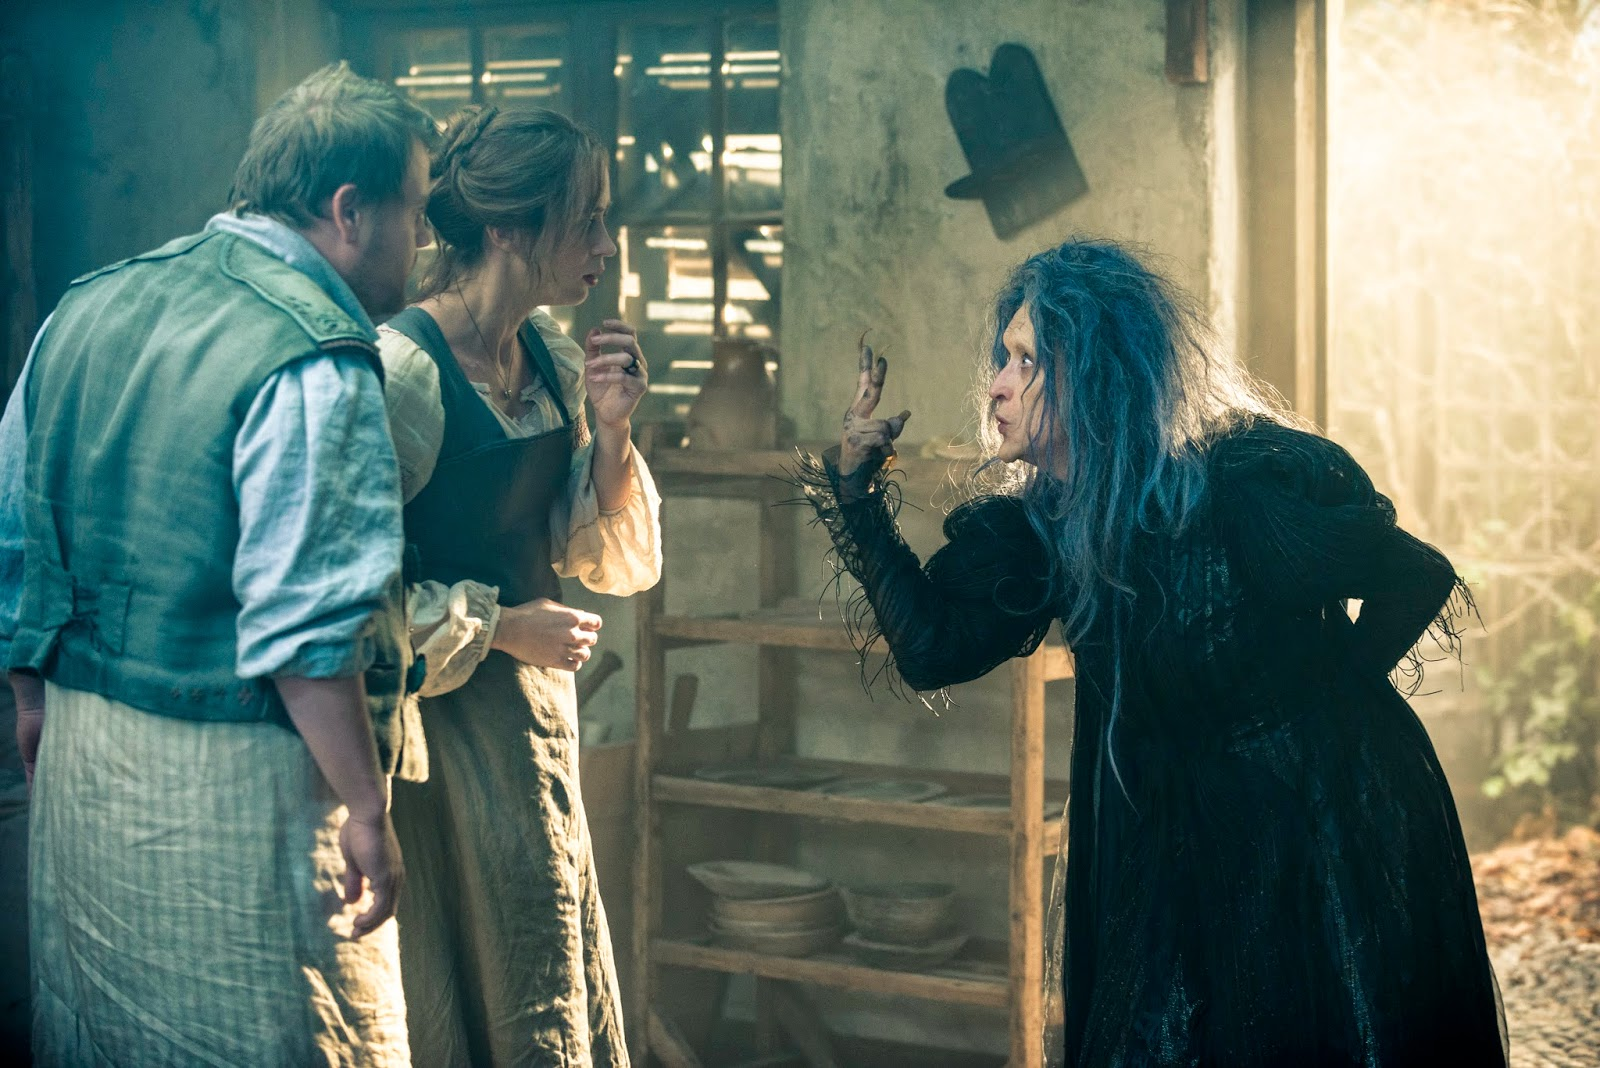 The Witch (Meryl Streep) with the Baker (James Corden) and his wife (Emily Blunt) in Into The Woods